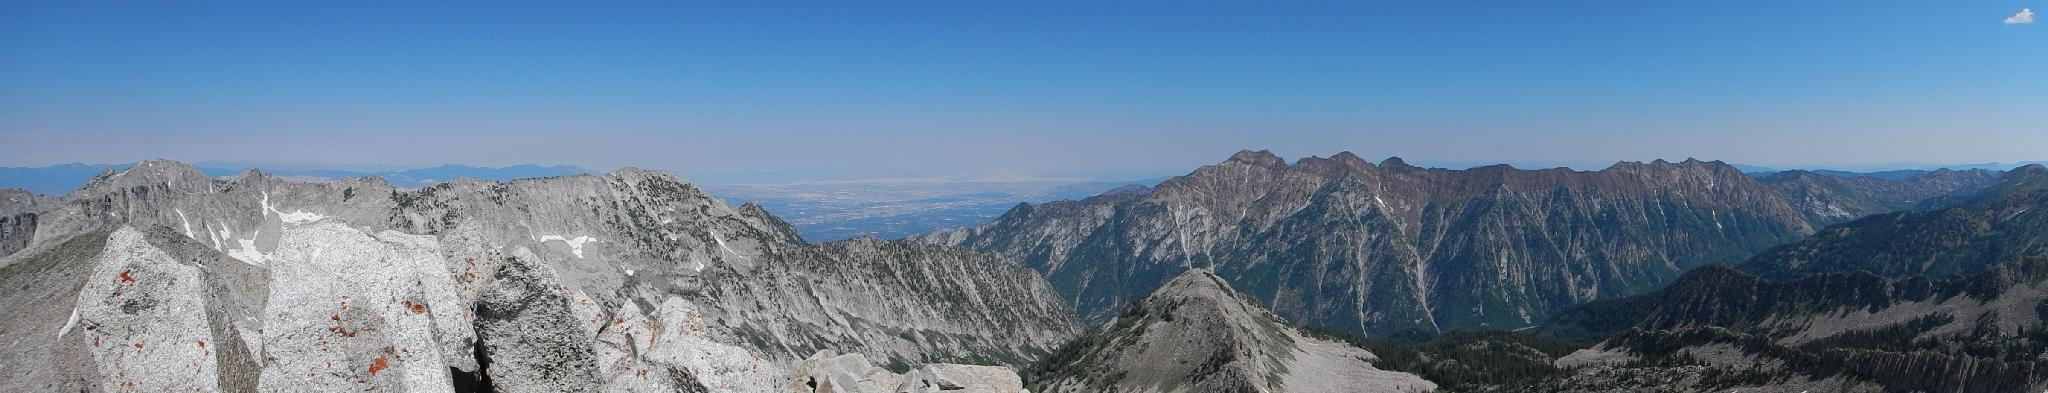 West andnorth panorama - Lone Peak, SLC, Twin Peaks, and Dromedary.